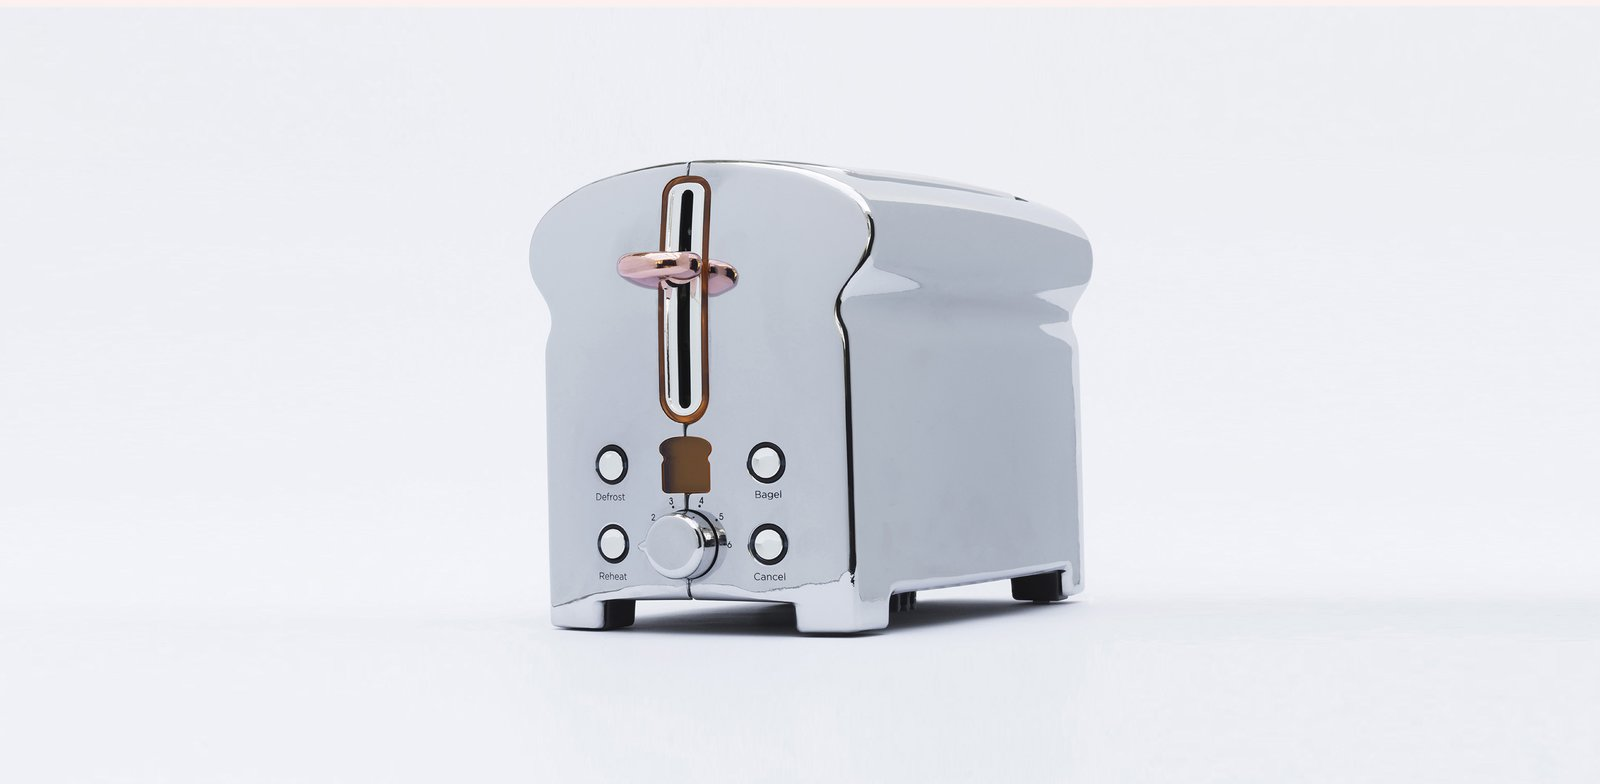 Design Democratizer Bobby Berk's Eureka Moment With a Humble Toaster